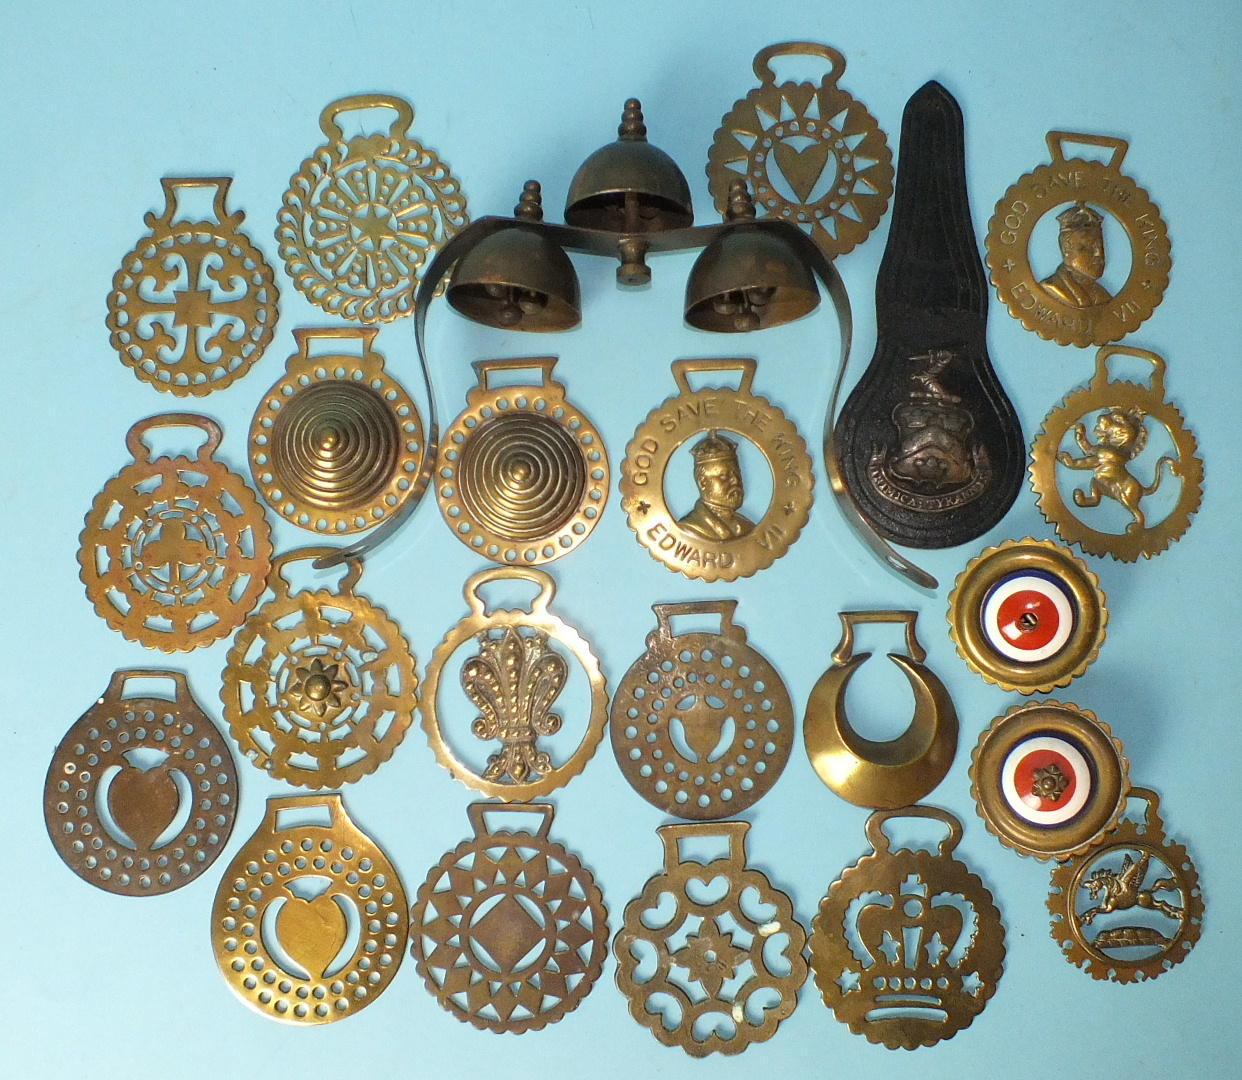 Lot 688 - Horse brasses, a brass terret with bells and a collection of horse brasses, including two bull eyes,